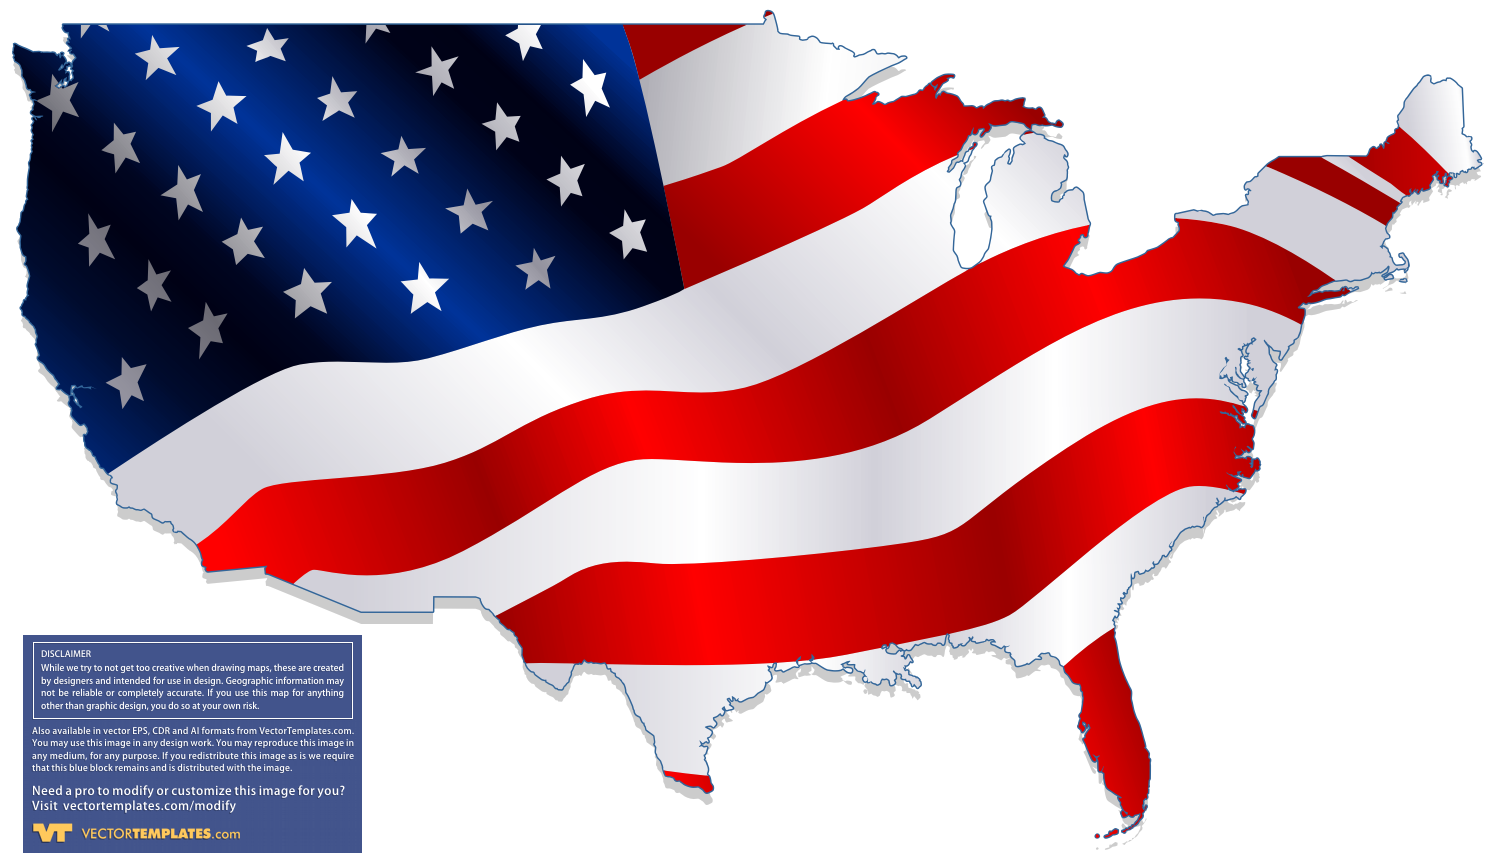 Us maps usa state maps view details acceptable use free download sciox Images